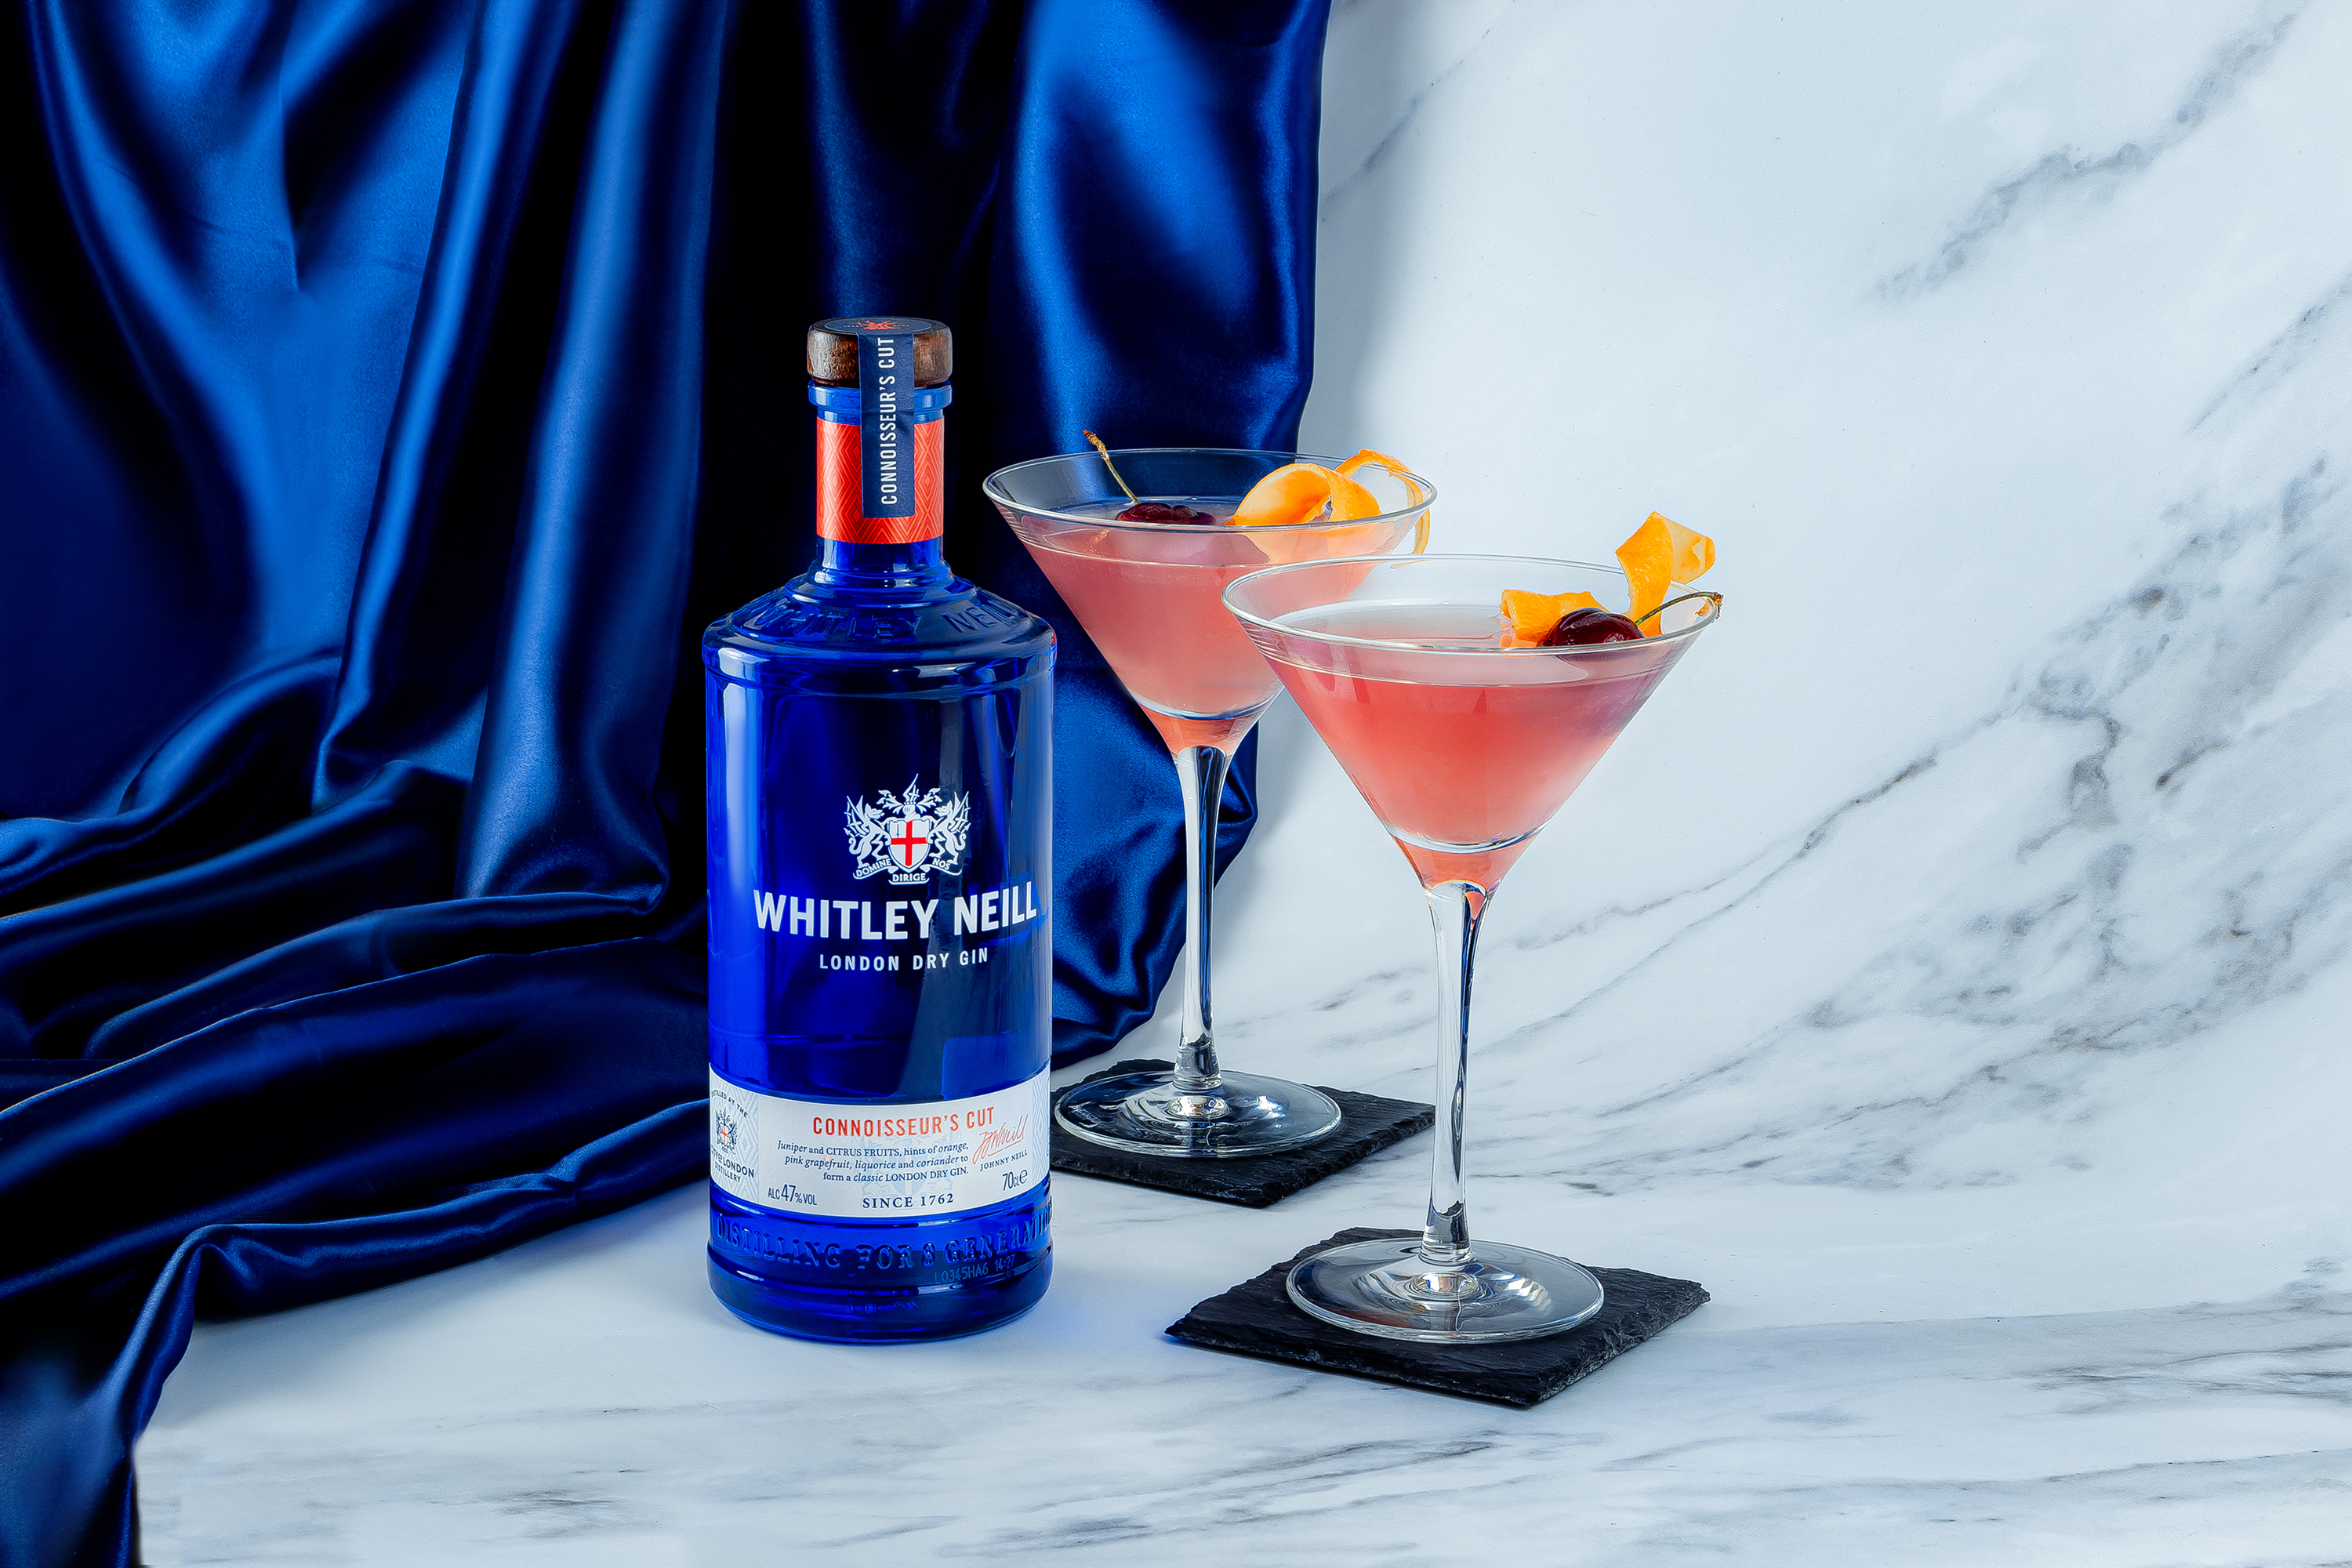 Whitley Neill Connoisseur's Cut Gin Ruby Martini